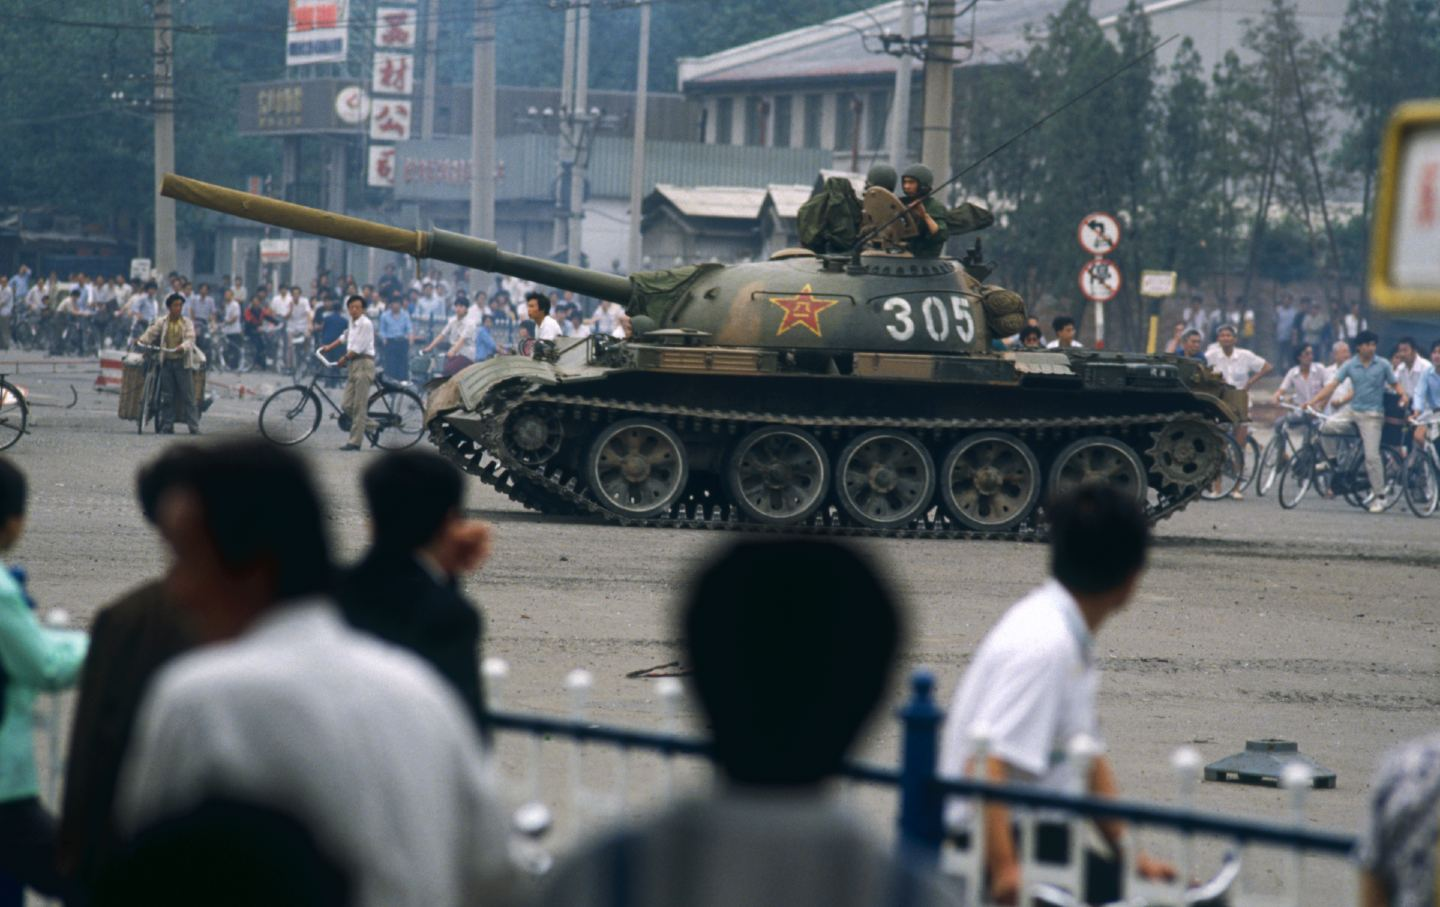 Tiananmen Square aftermath